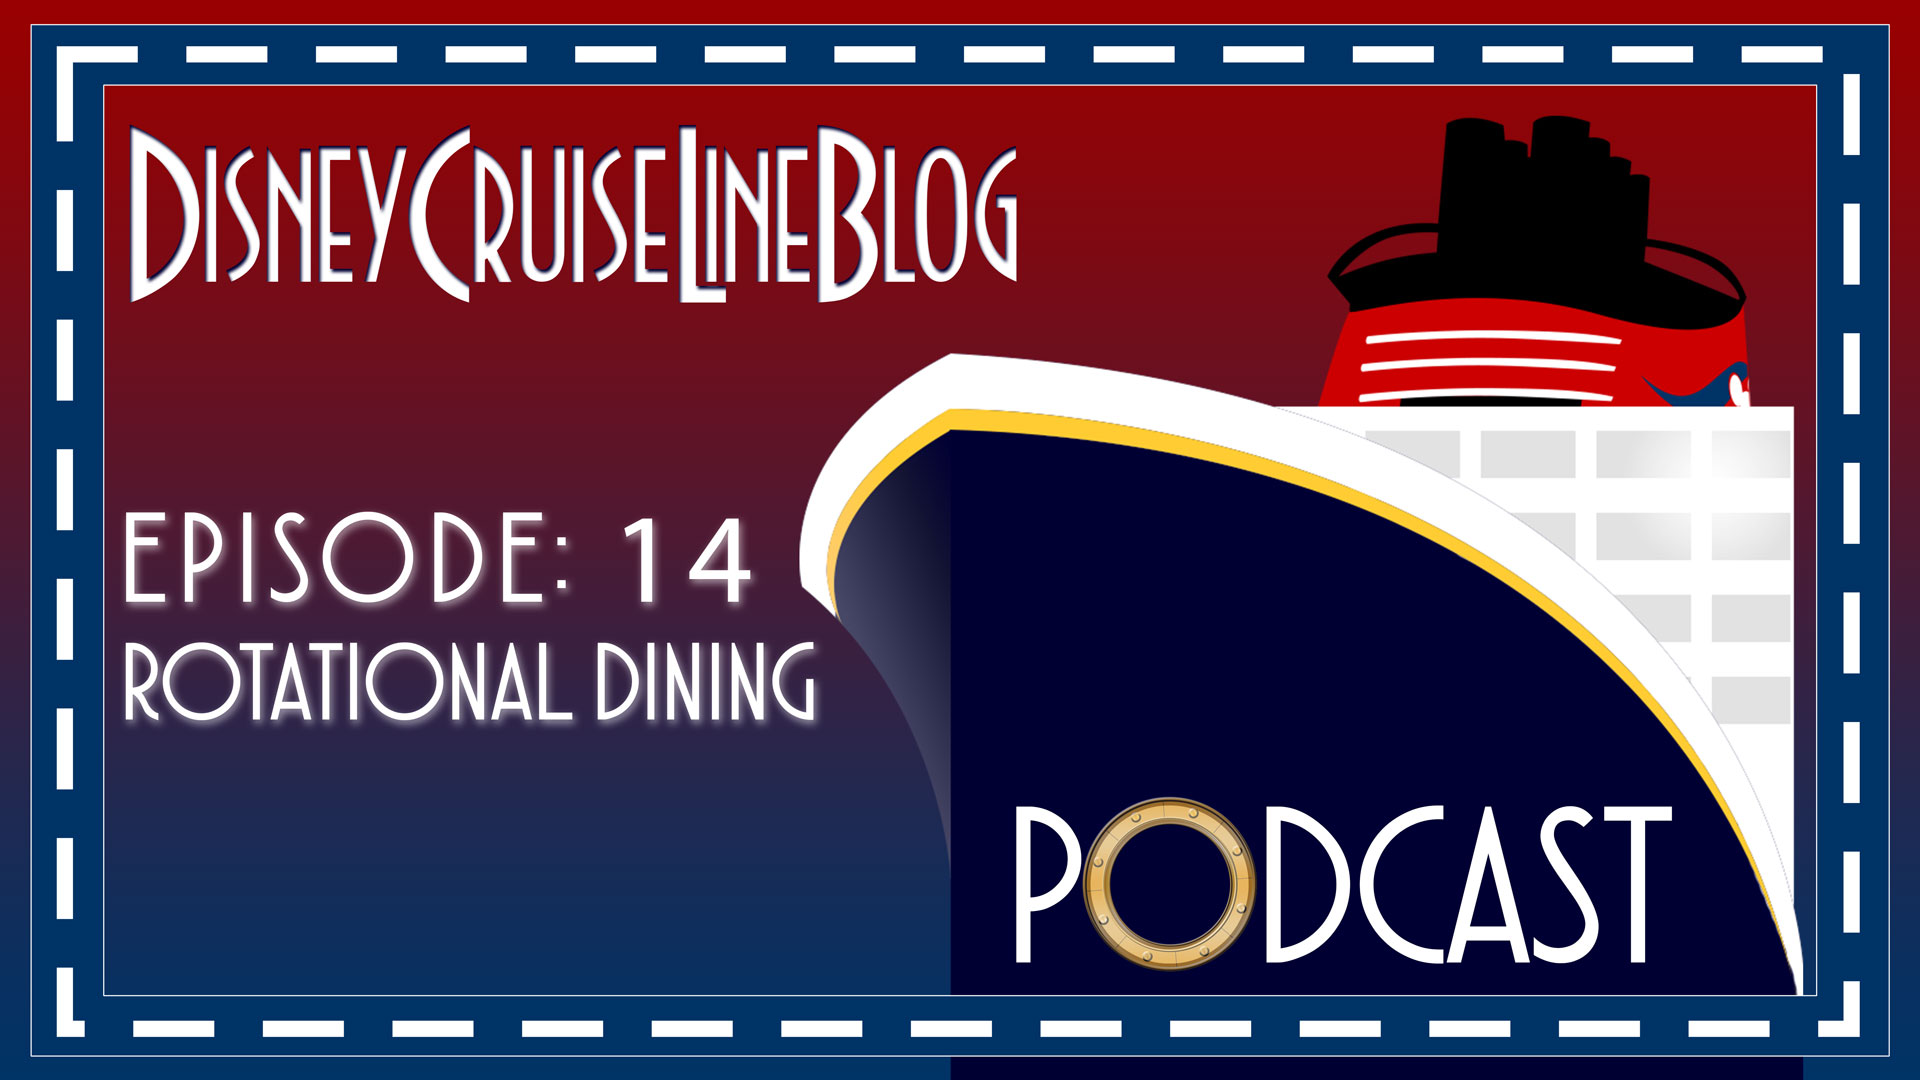 DCL Blog Podcast Episode 14 Rotational Dining